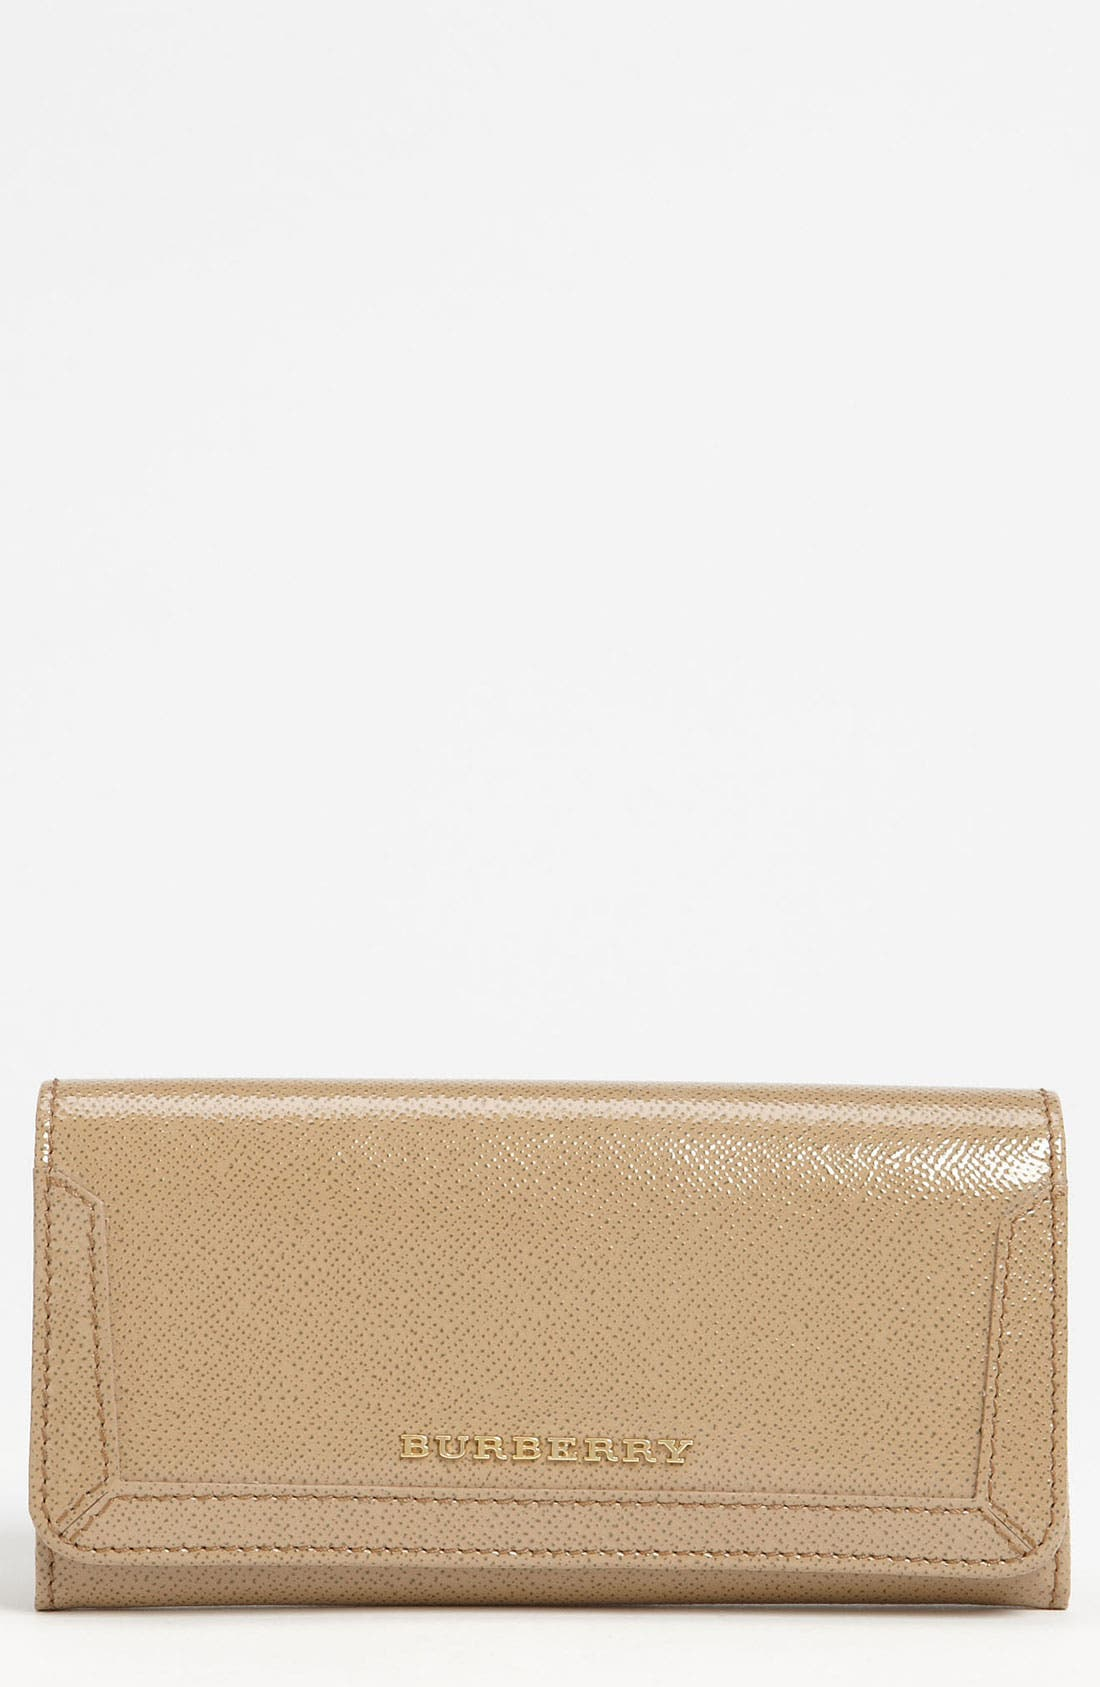 Alternate Image 1 Selected - Burberry Patent Leather Wallet